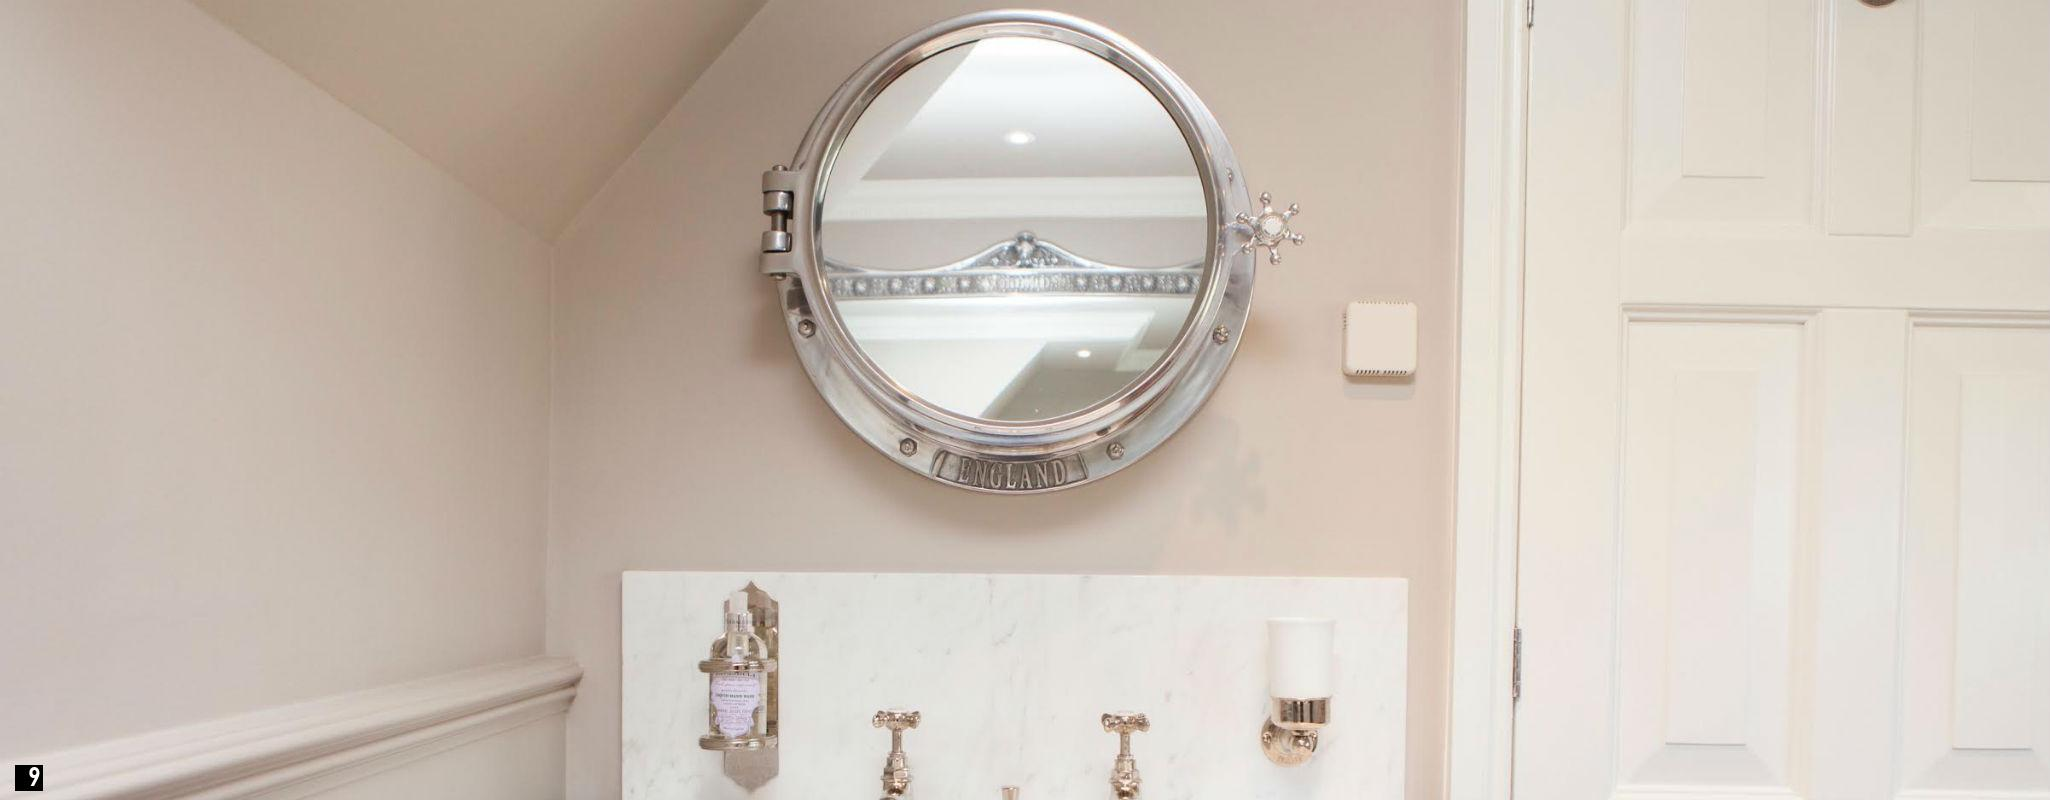 porthole bathroom cabinet 28 images porthole bathroom cabinet inspiration bathroom 2775